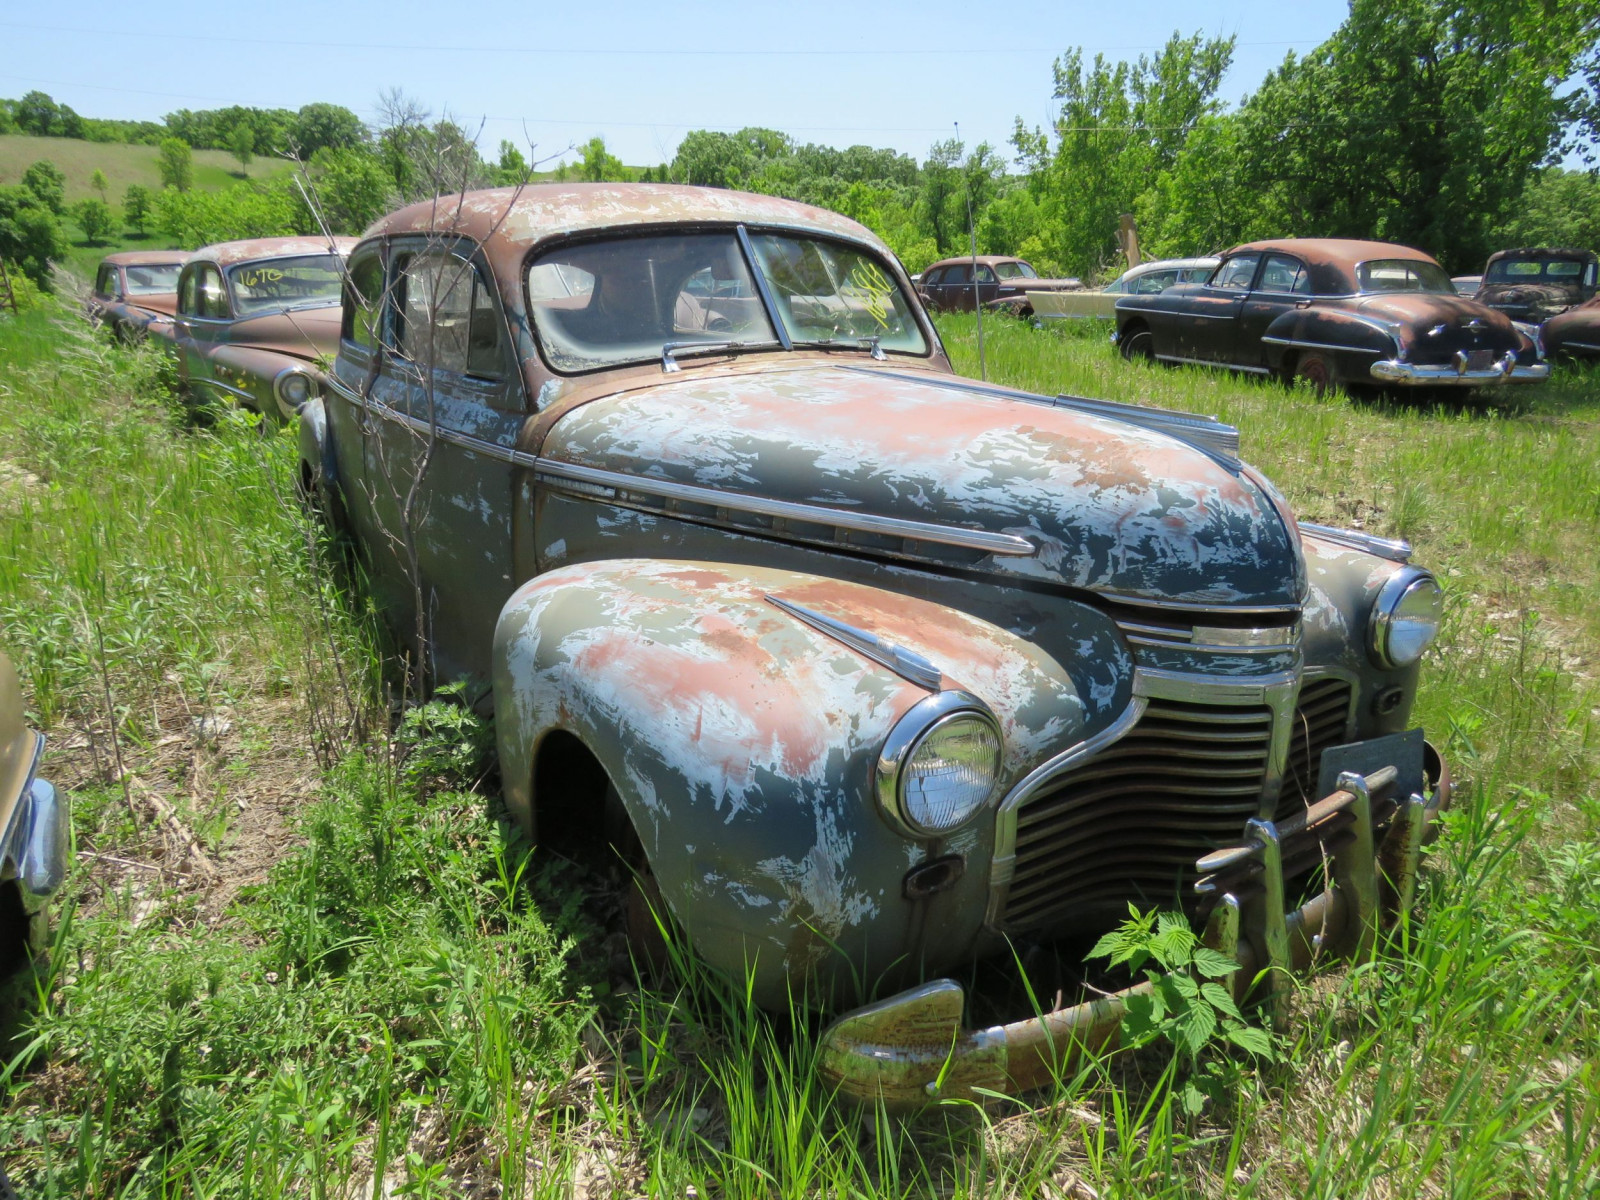 1941 Chevrolet 2dr Sedan for Project or parts - Image 2